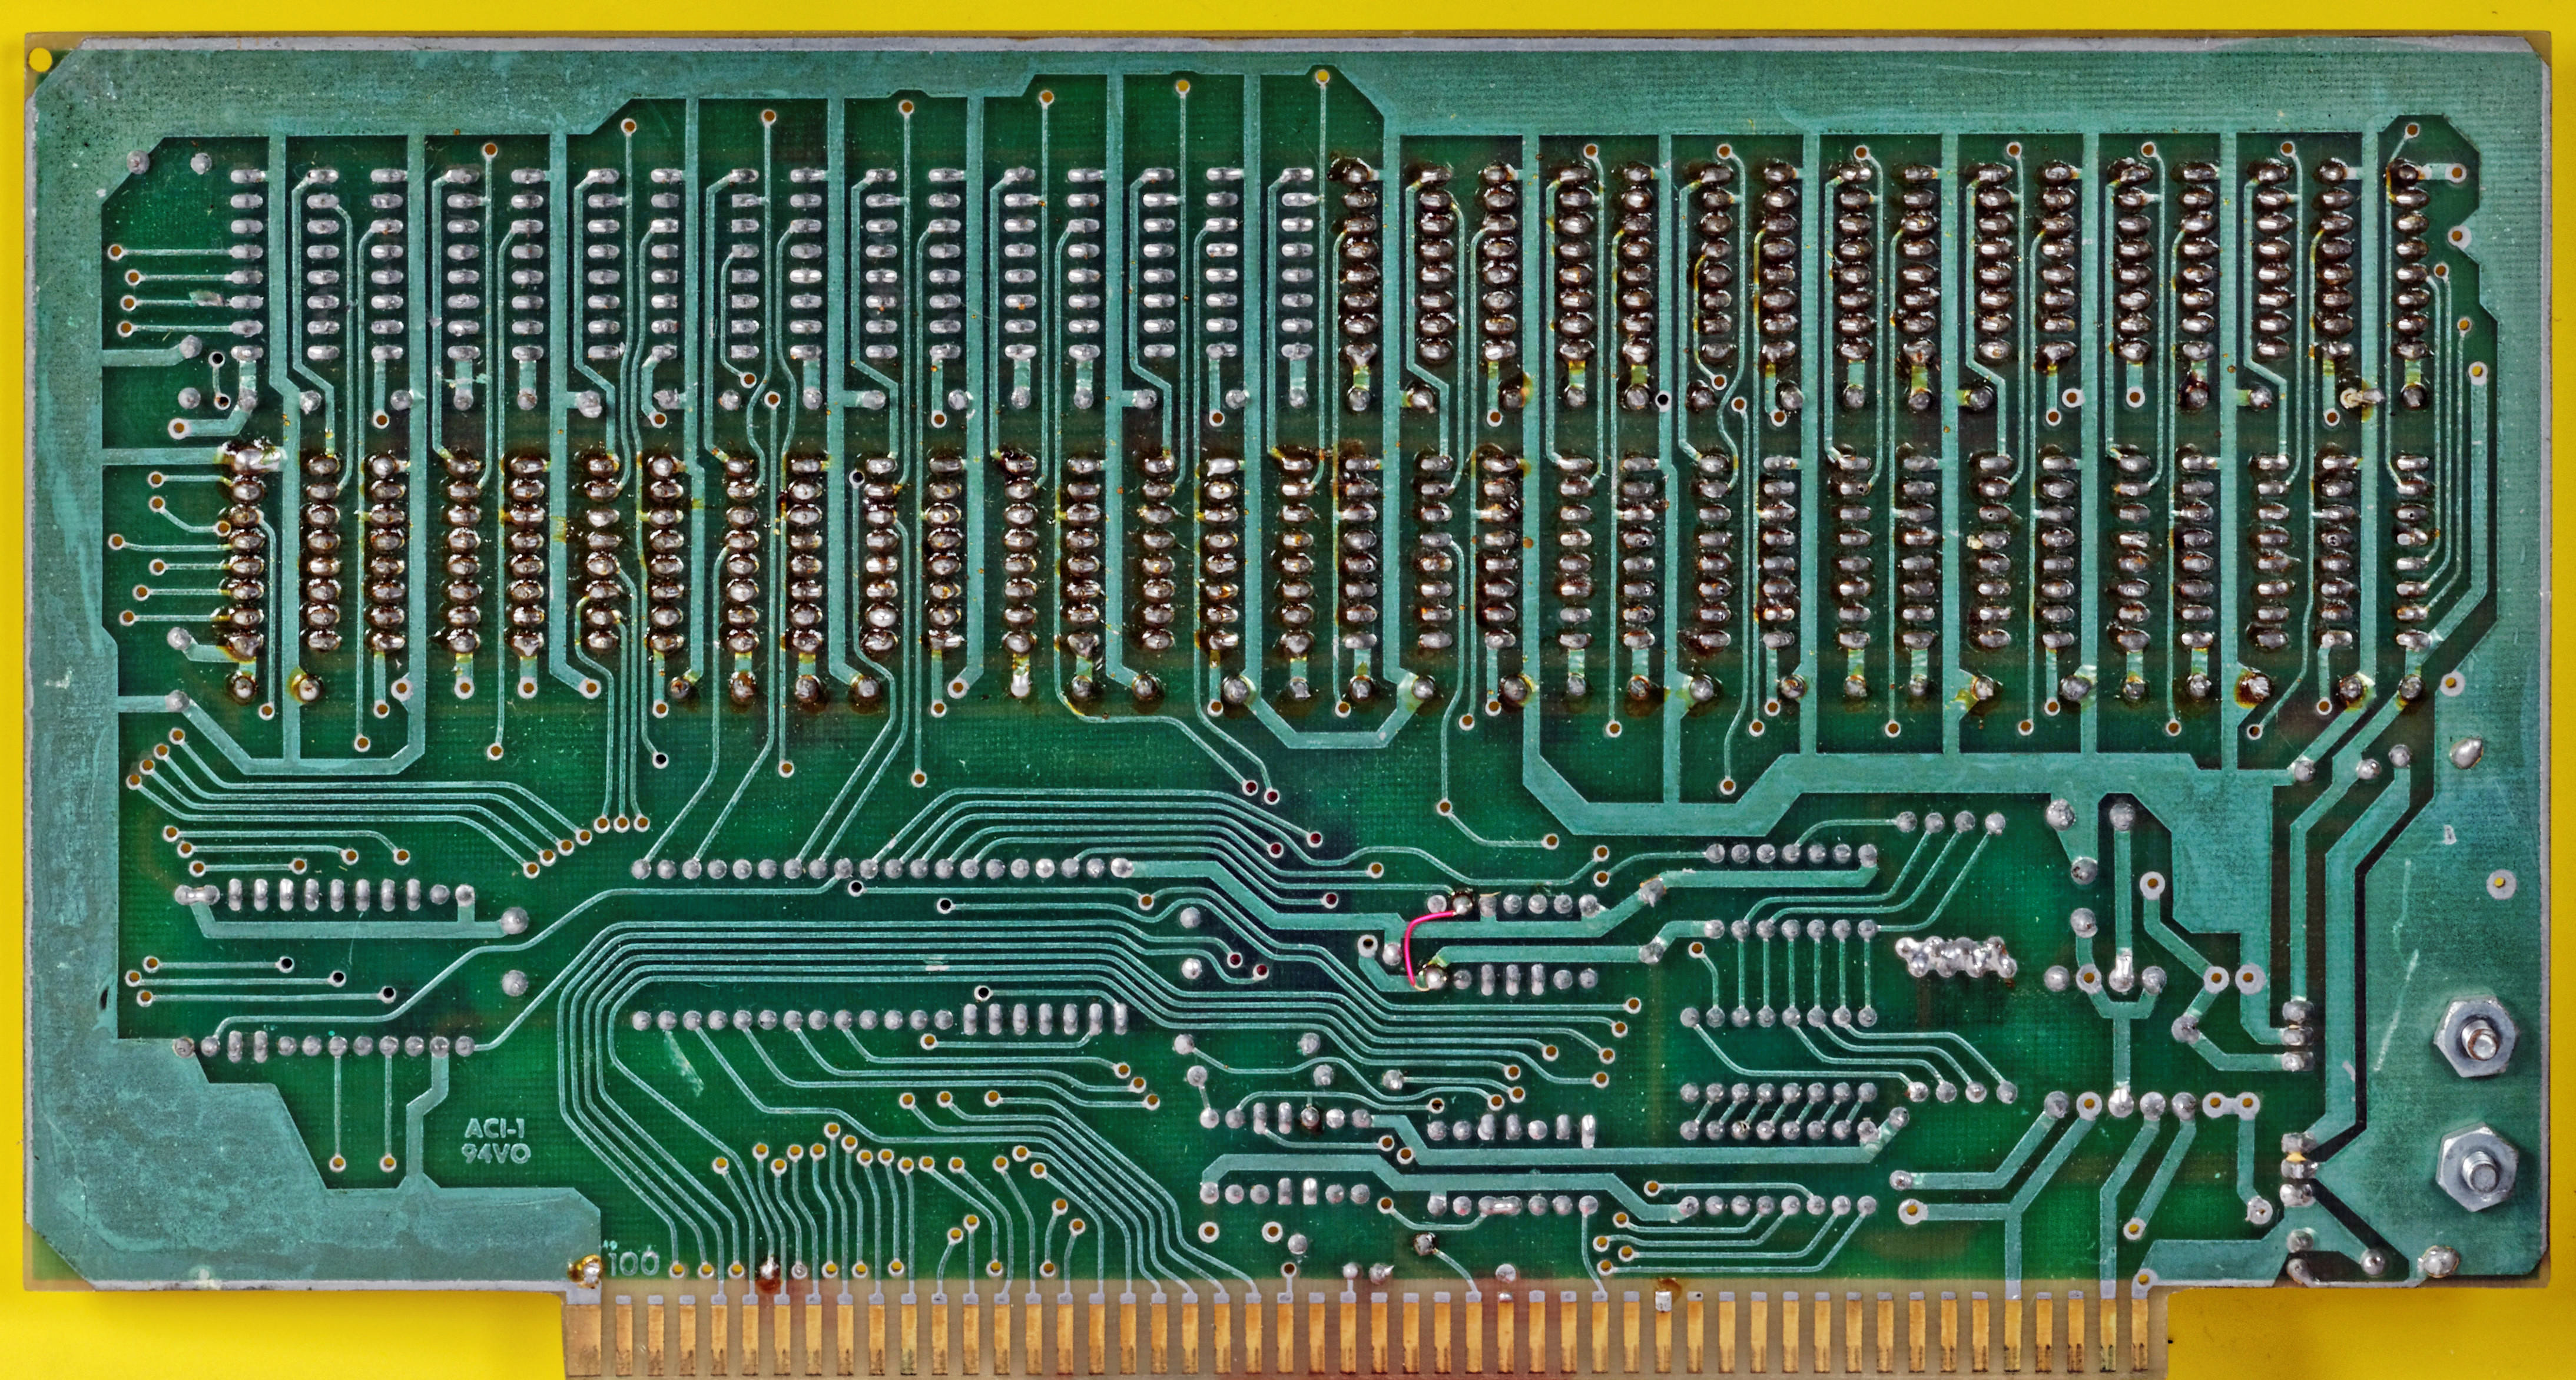 This should be 64K-memory-rear.jpeg.  Is it missing?